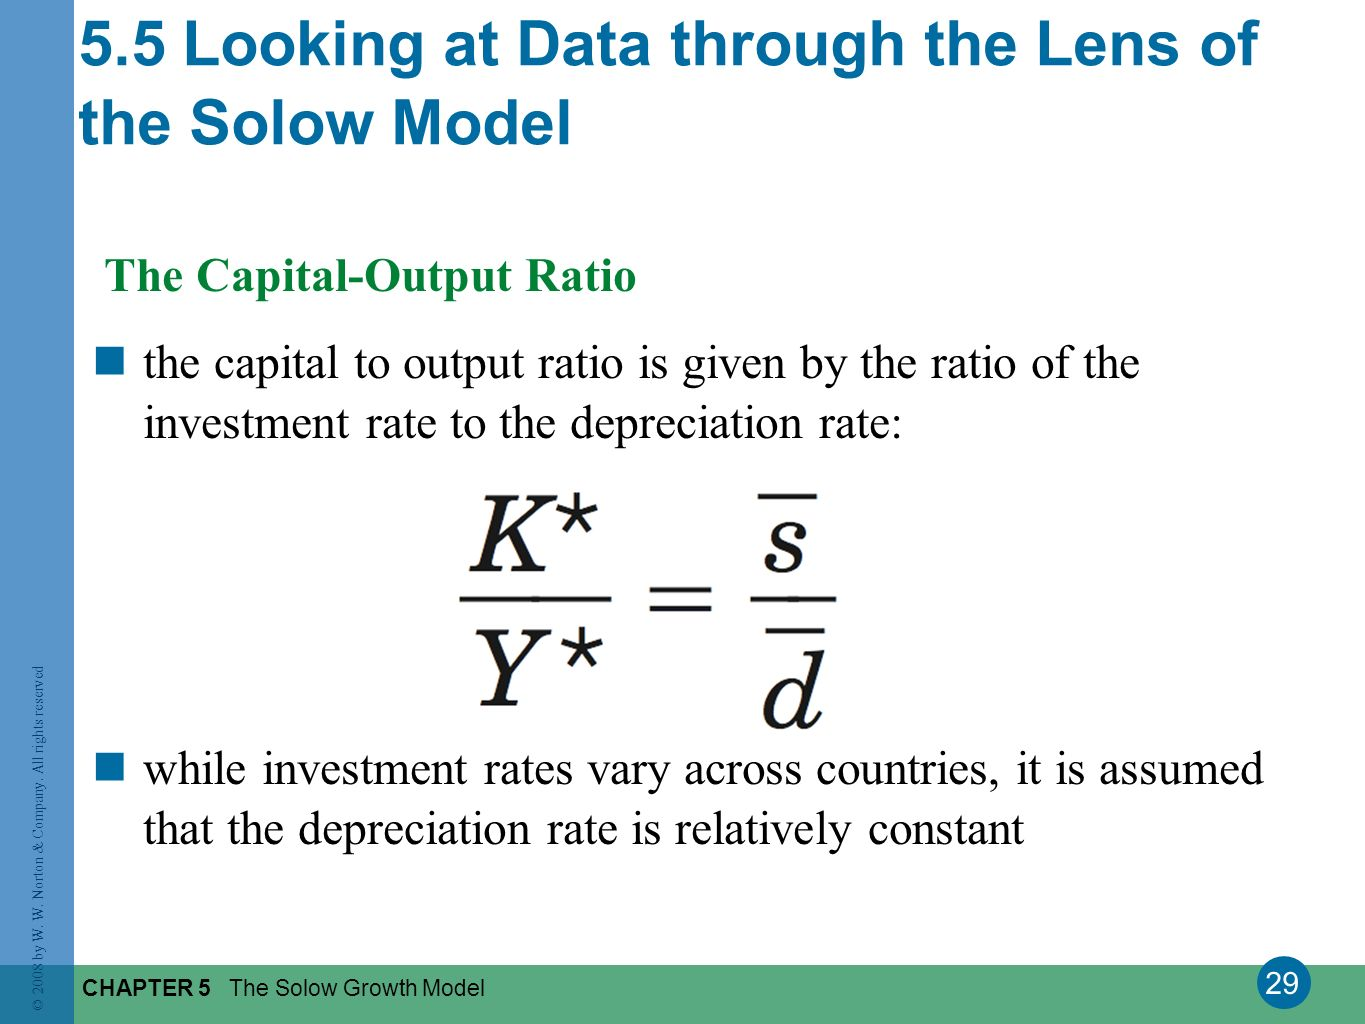 5.5 Looking at Data through the Lens of the Solow Model